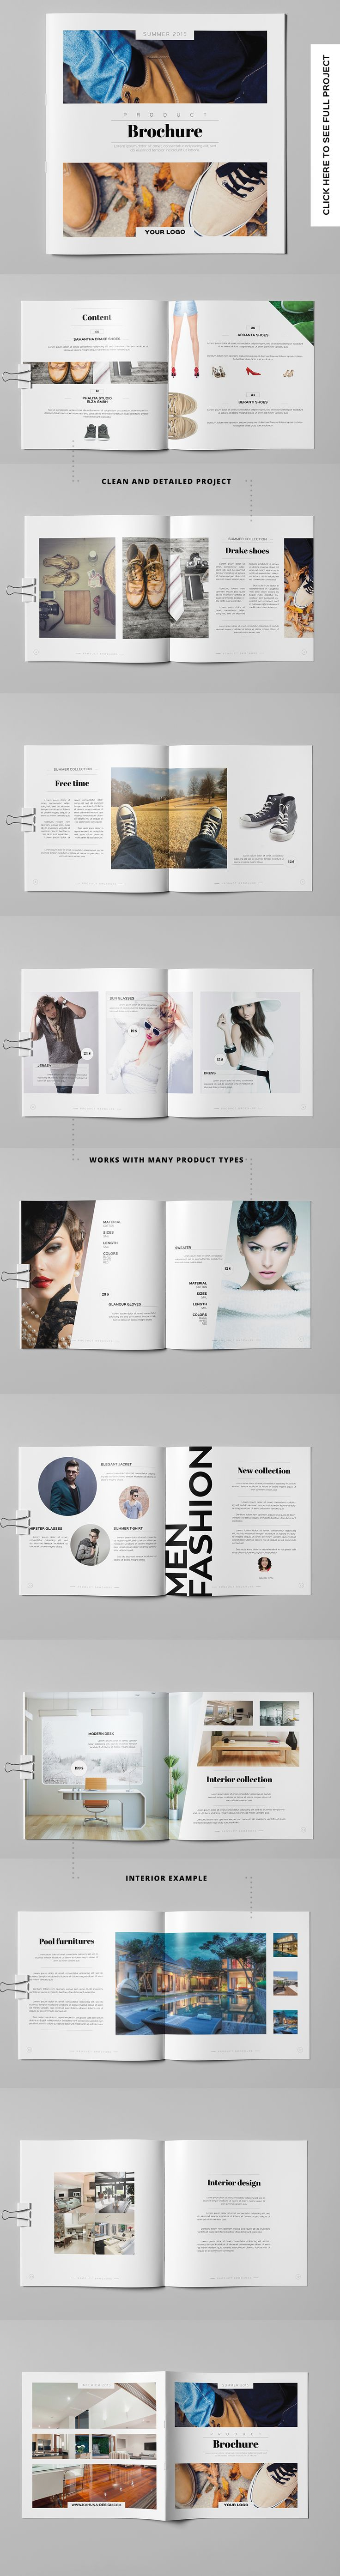 Product Brochure / Catalog by Kahuna Design on Creative Market